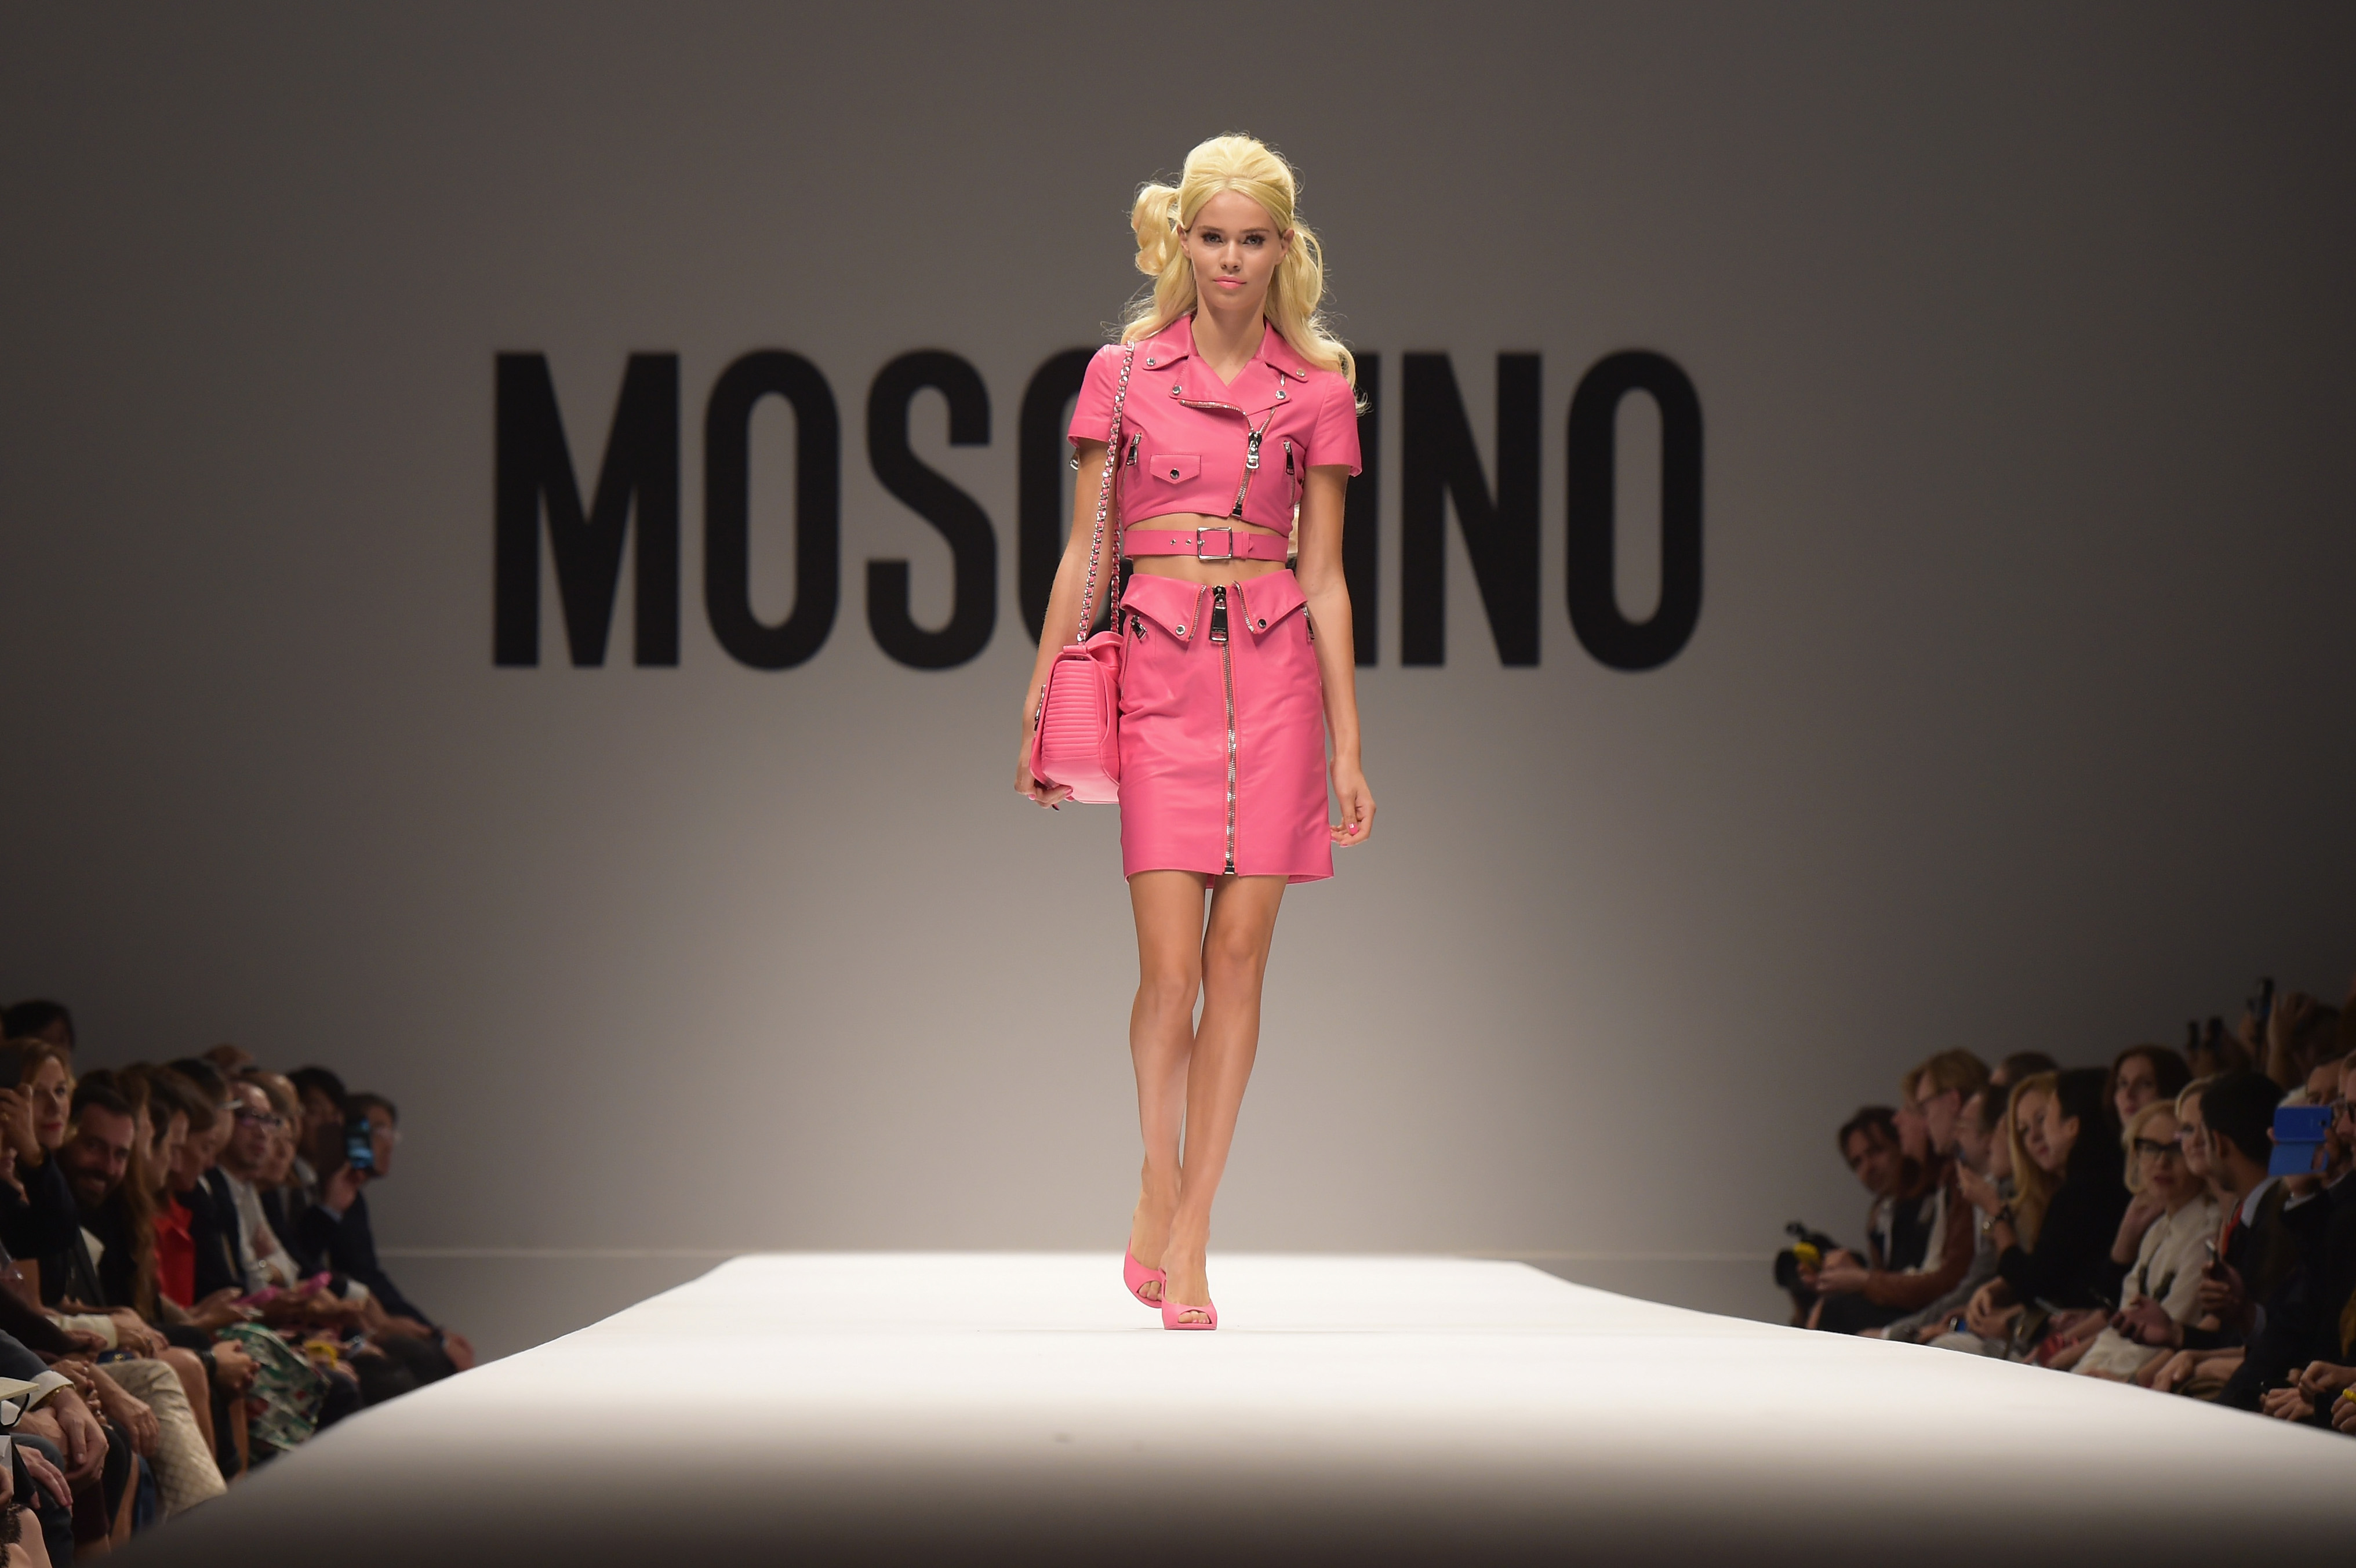 Moschino Ditches McDonald's For Barbie